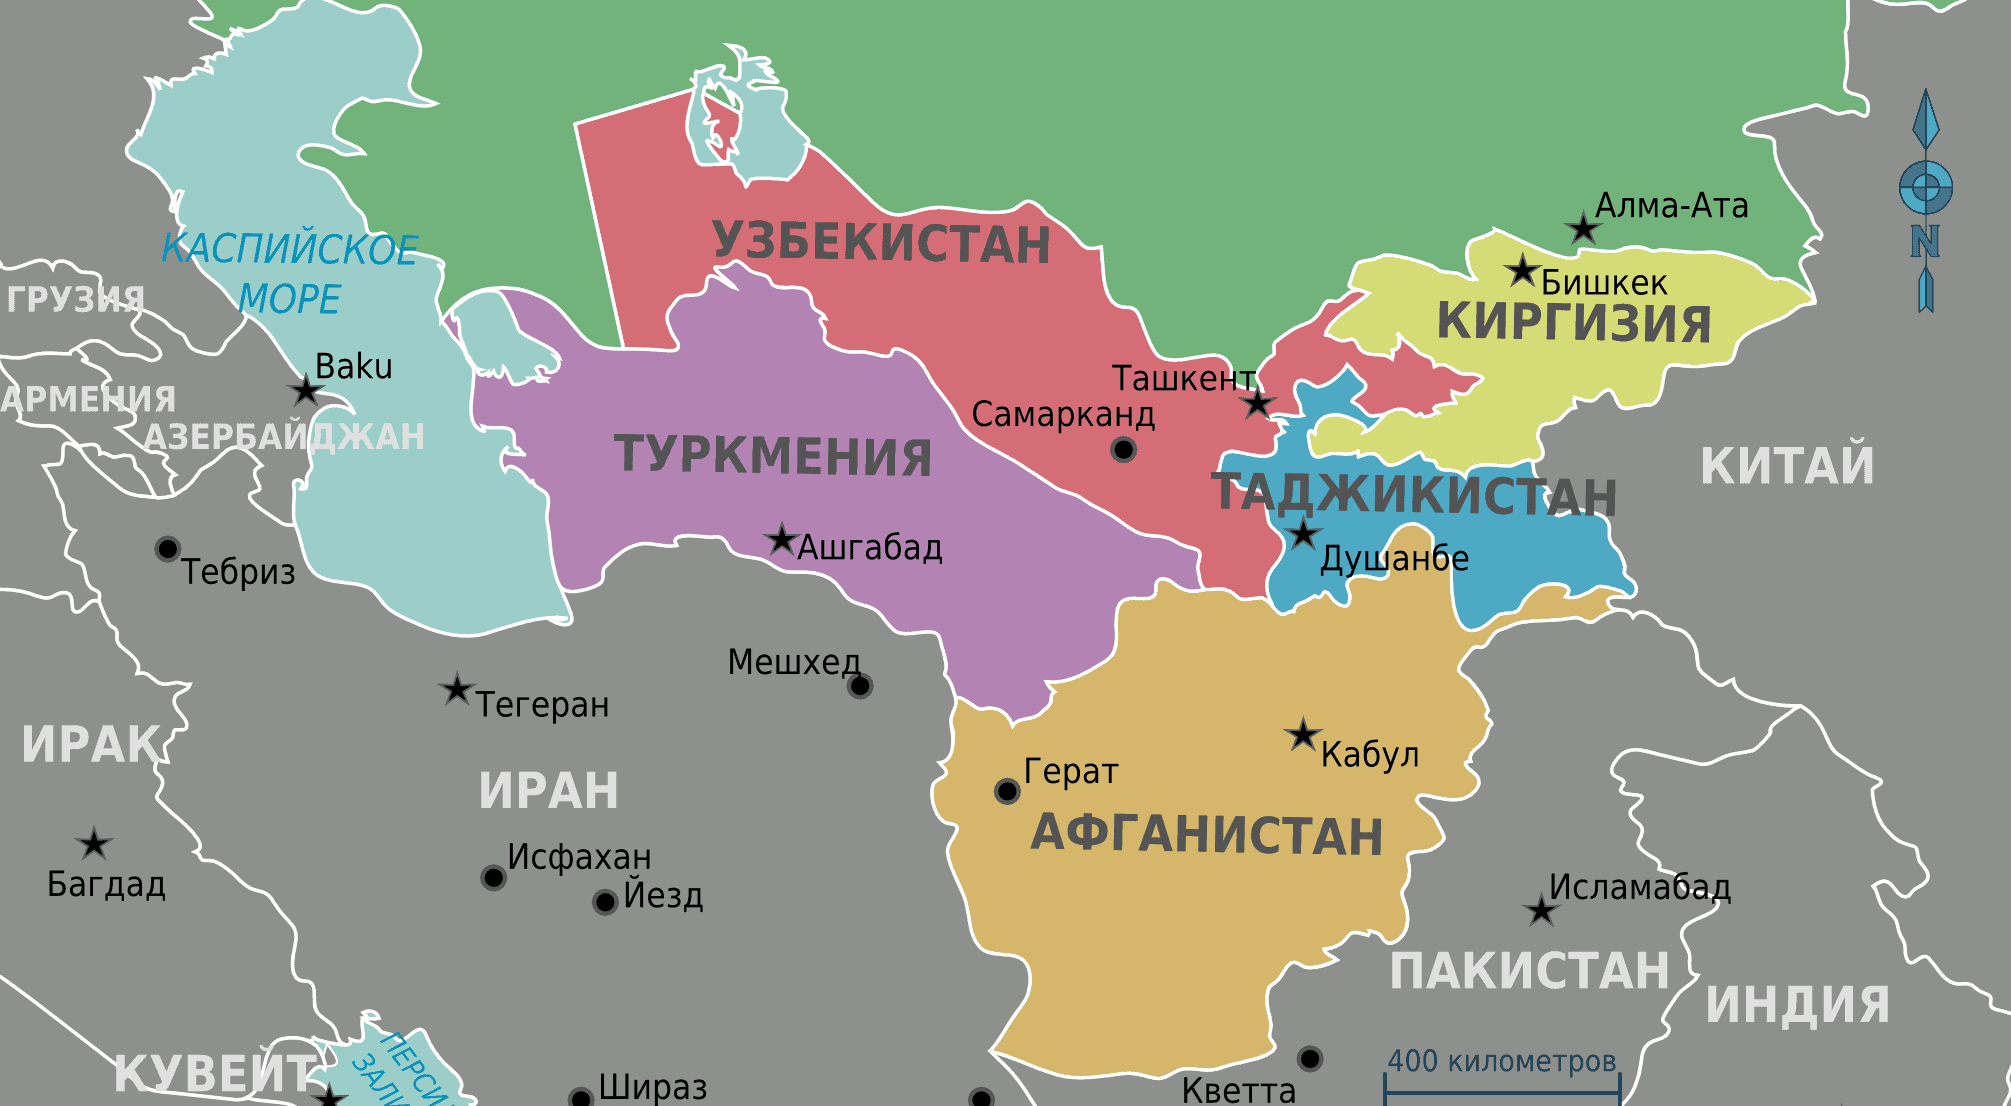 Map of Central Asia in Russian.